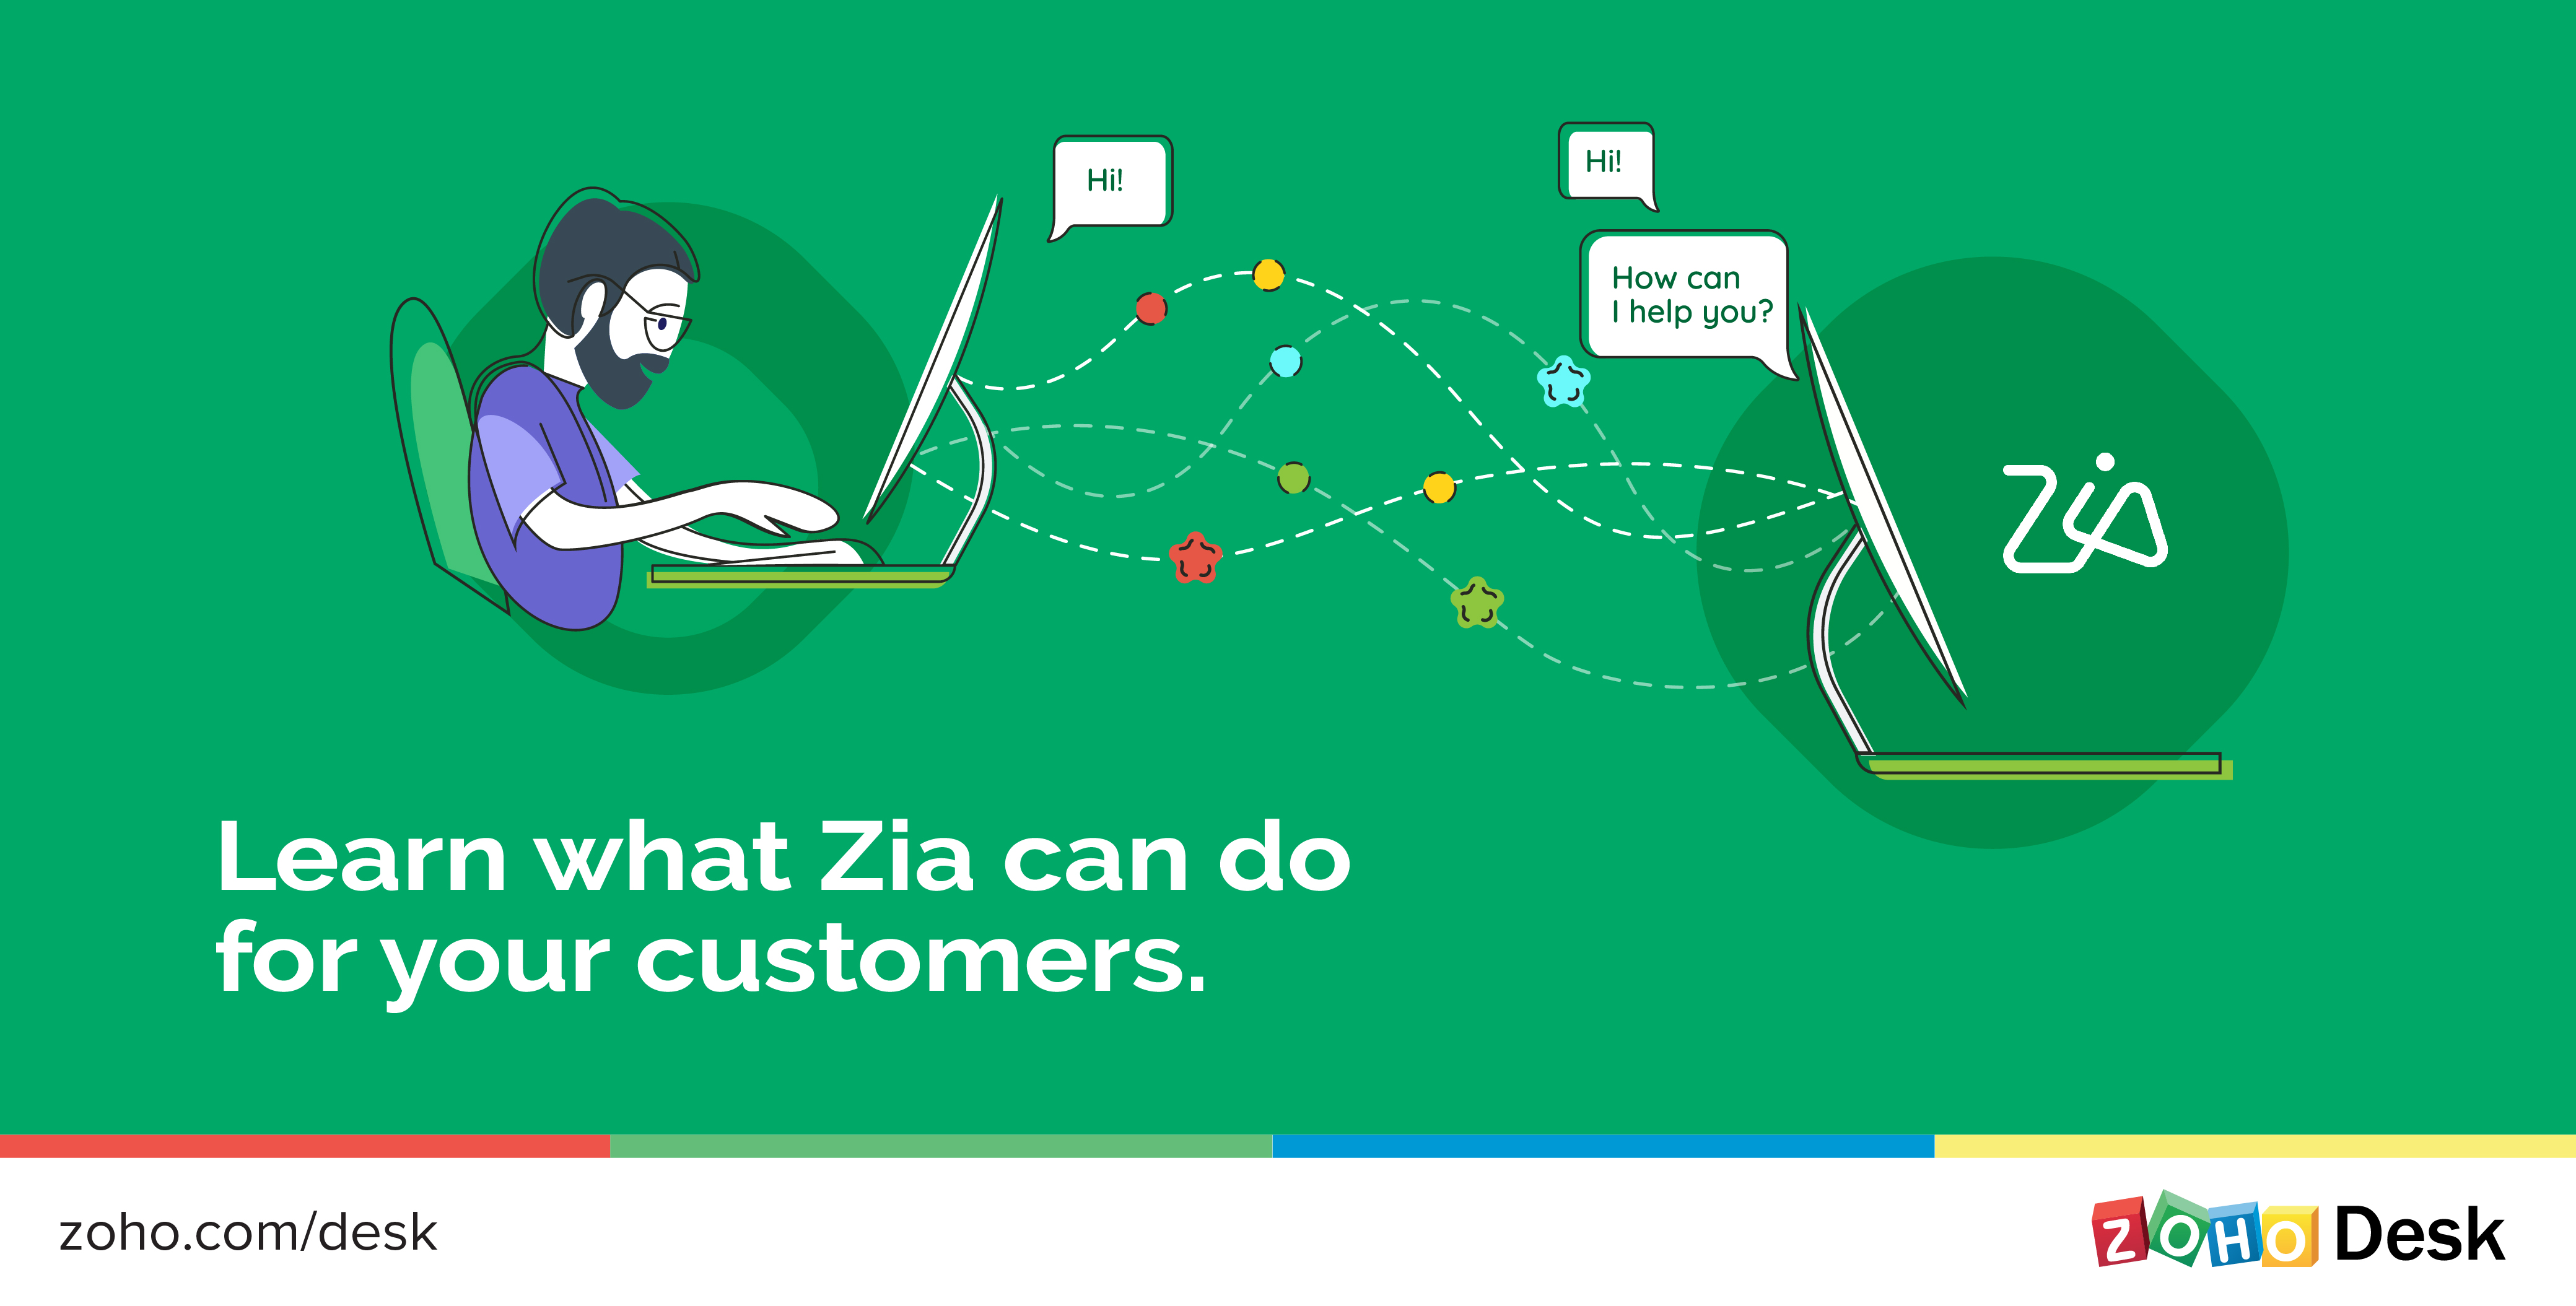 Zia for Customer Service, Part 3: Zia for Customers